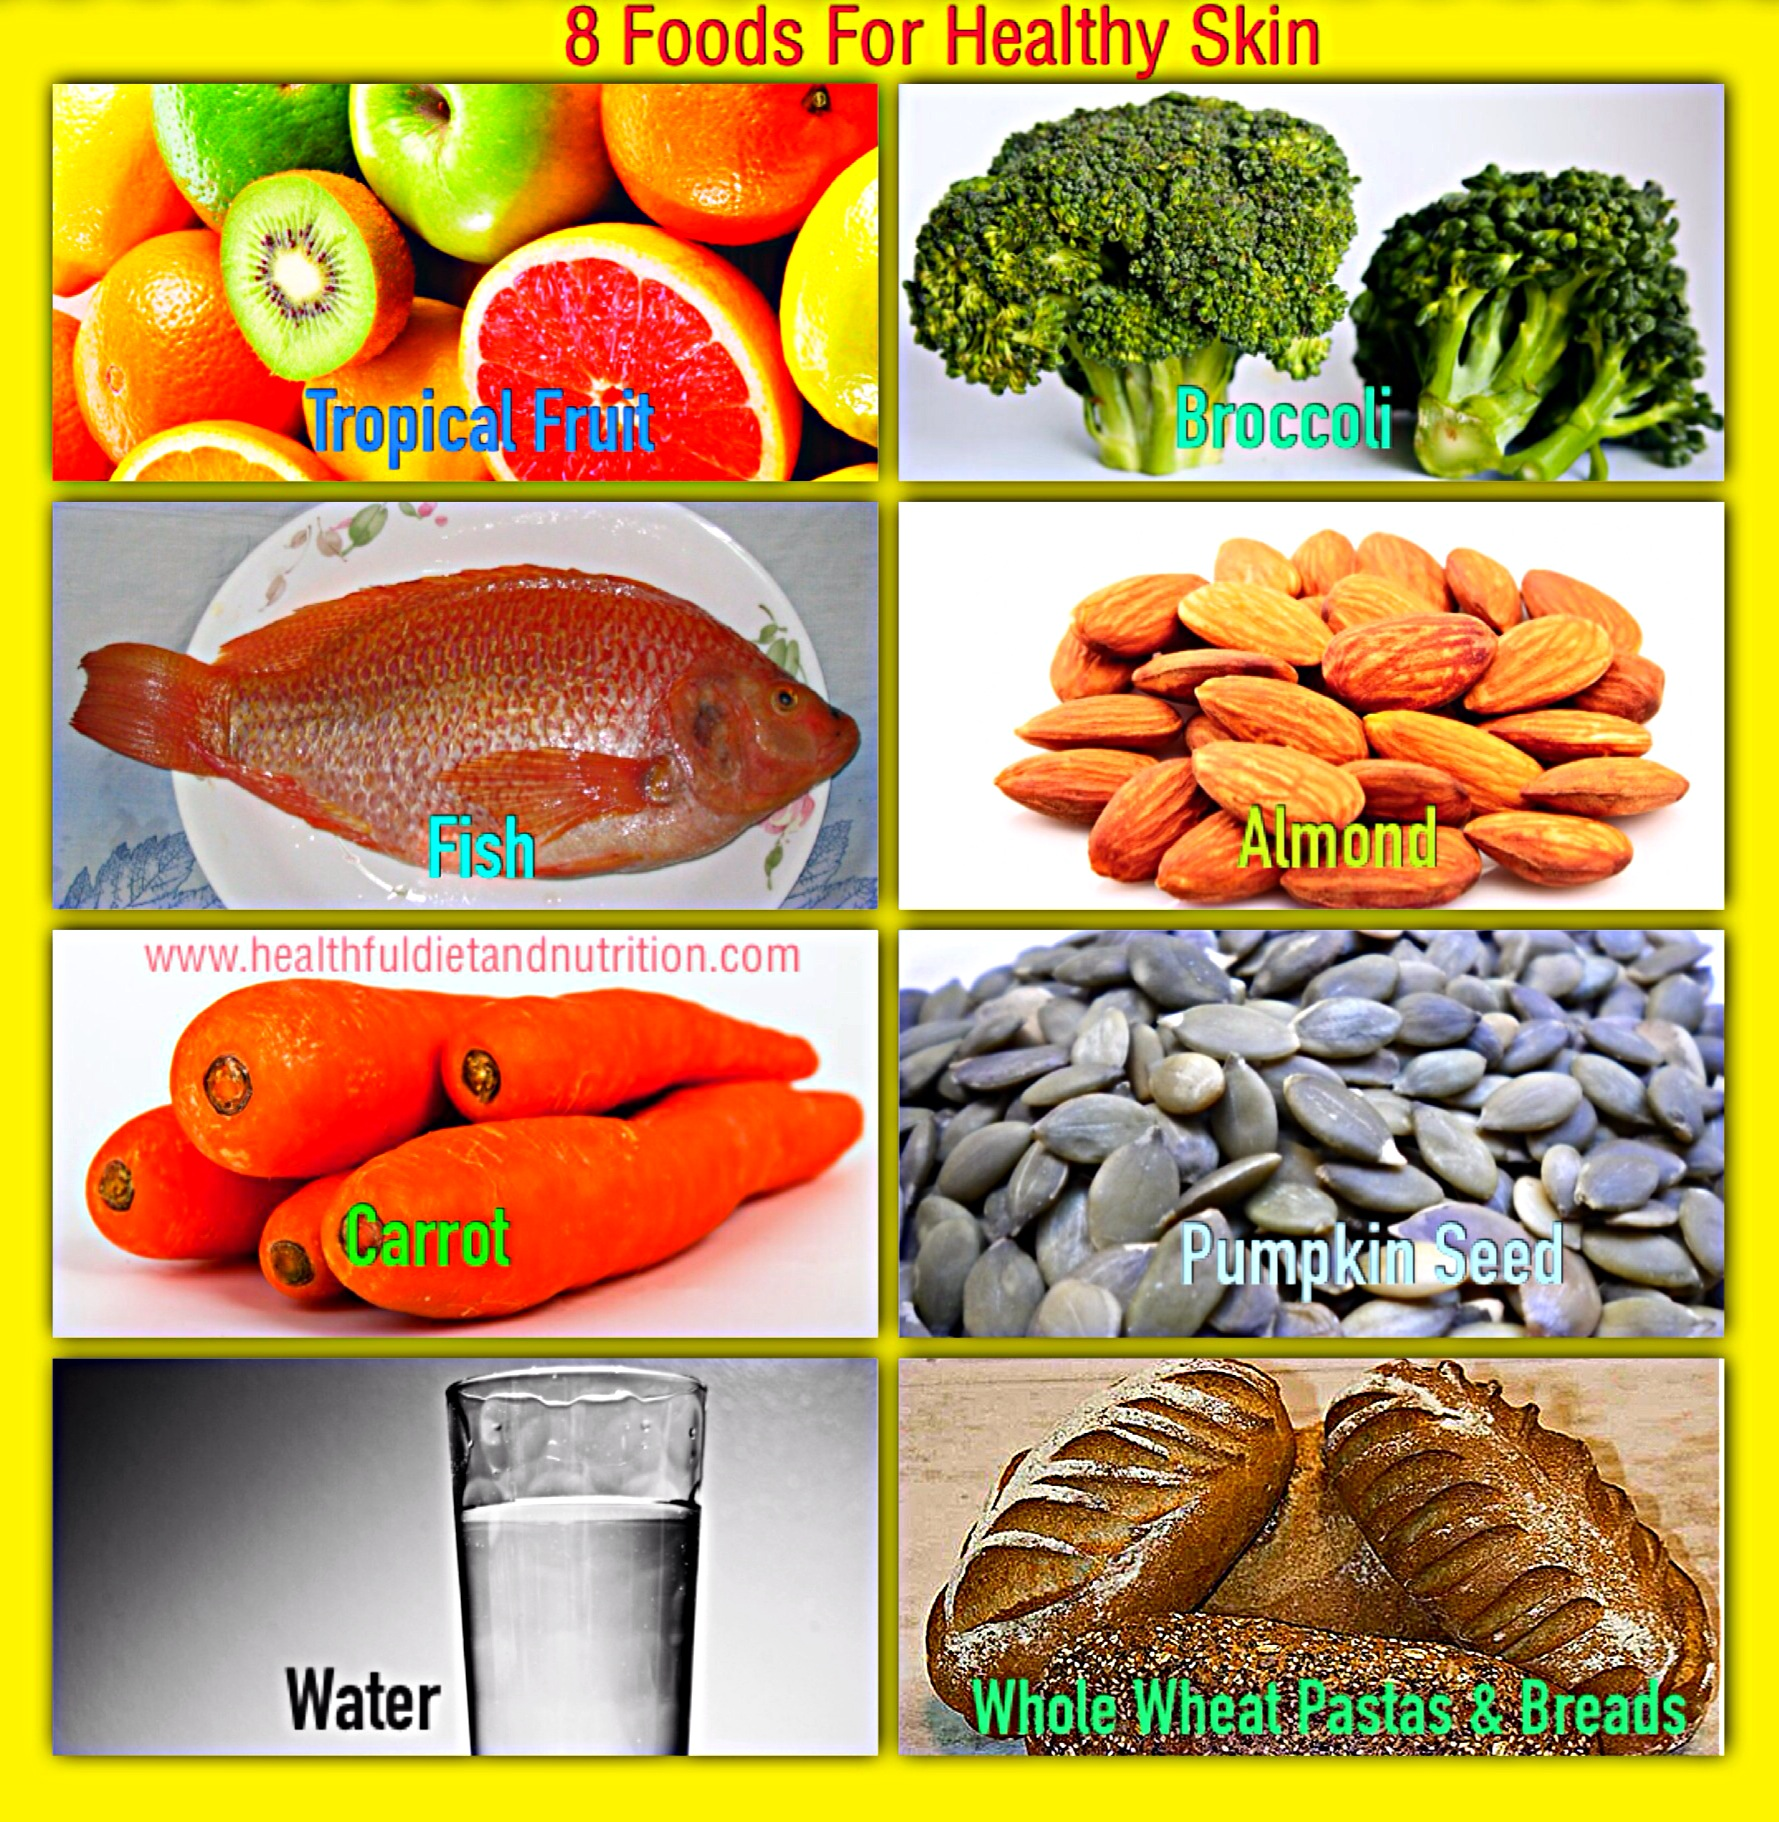 8 Foods For Healthy Skin